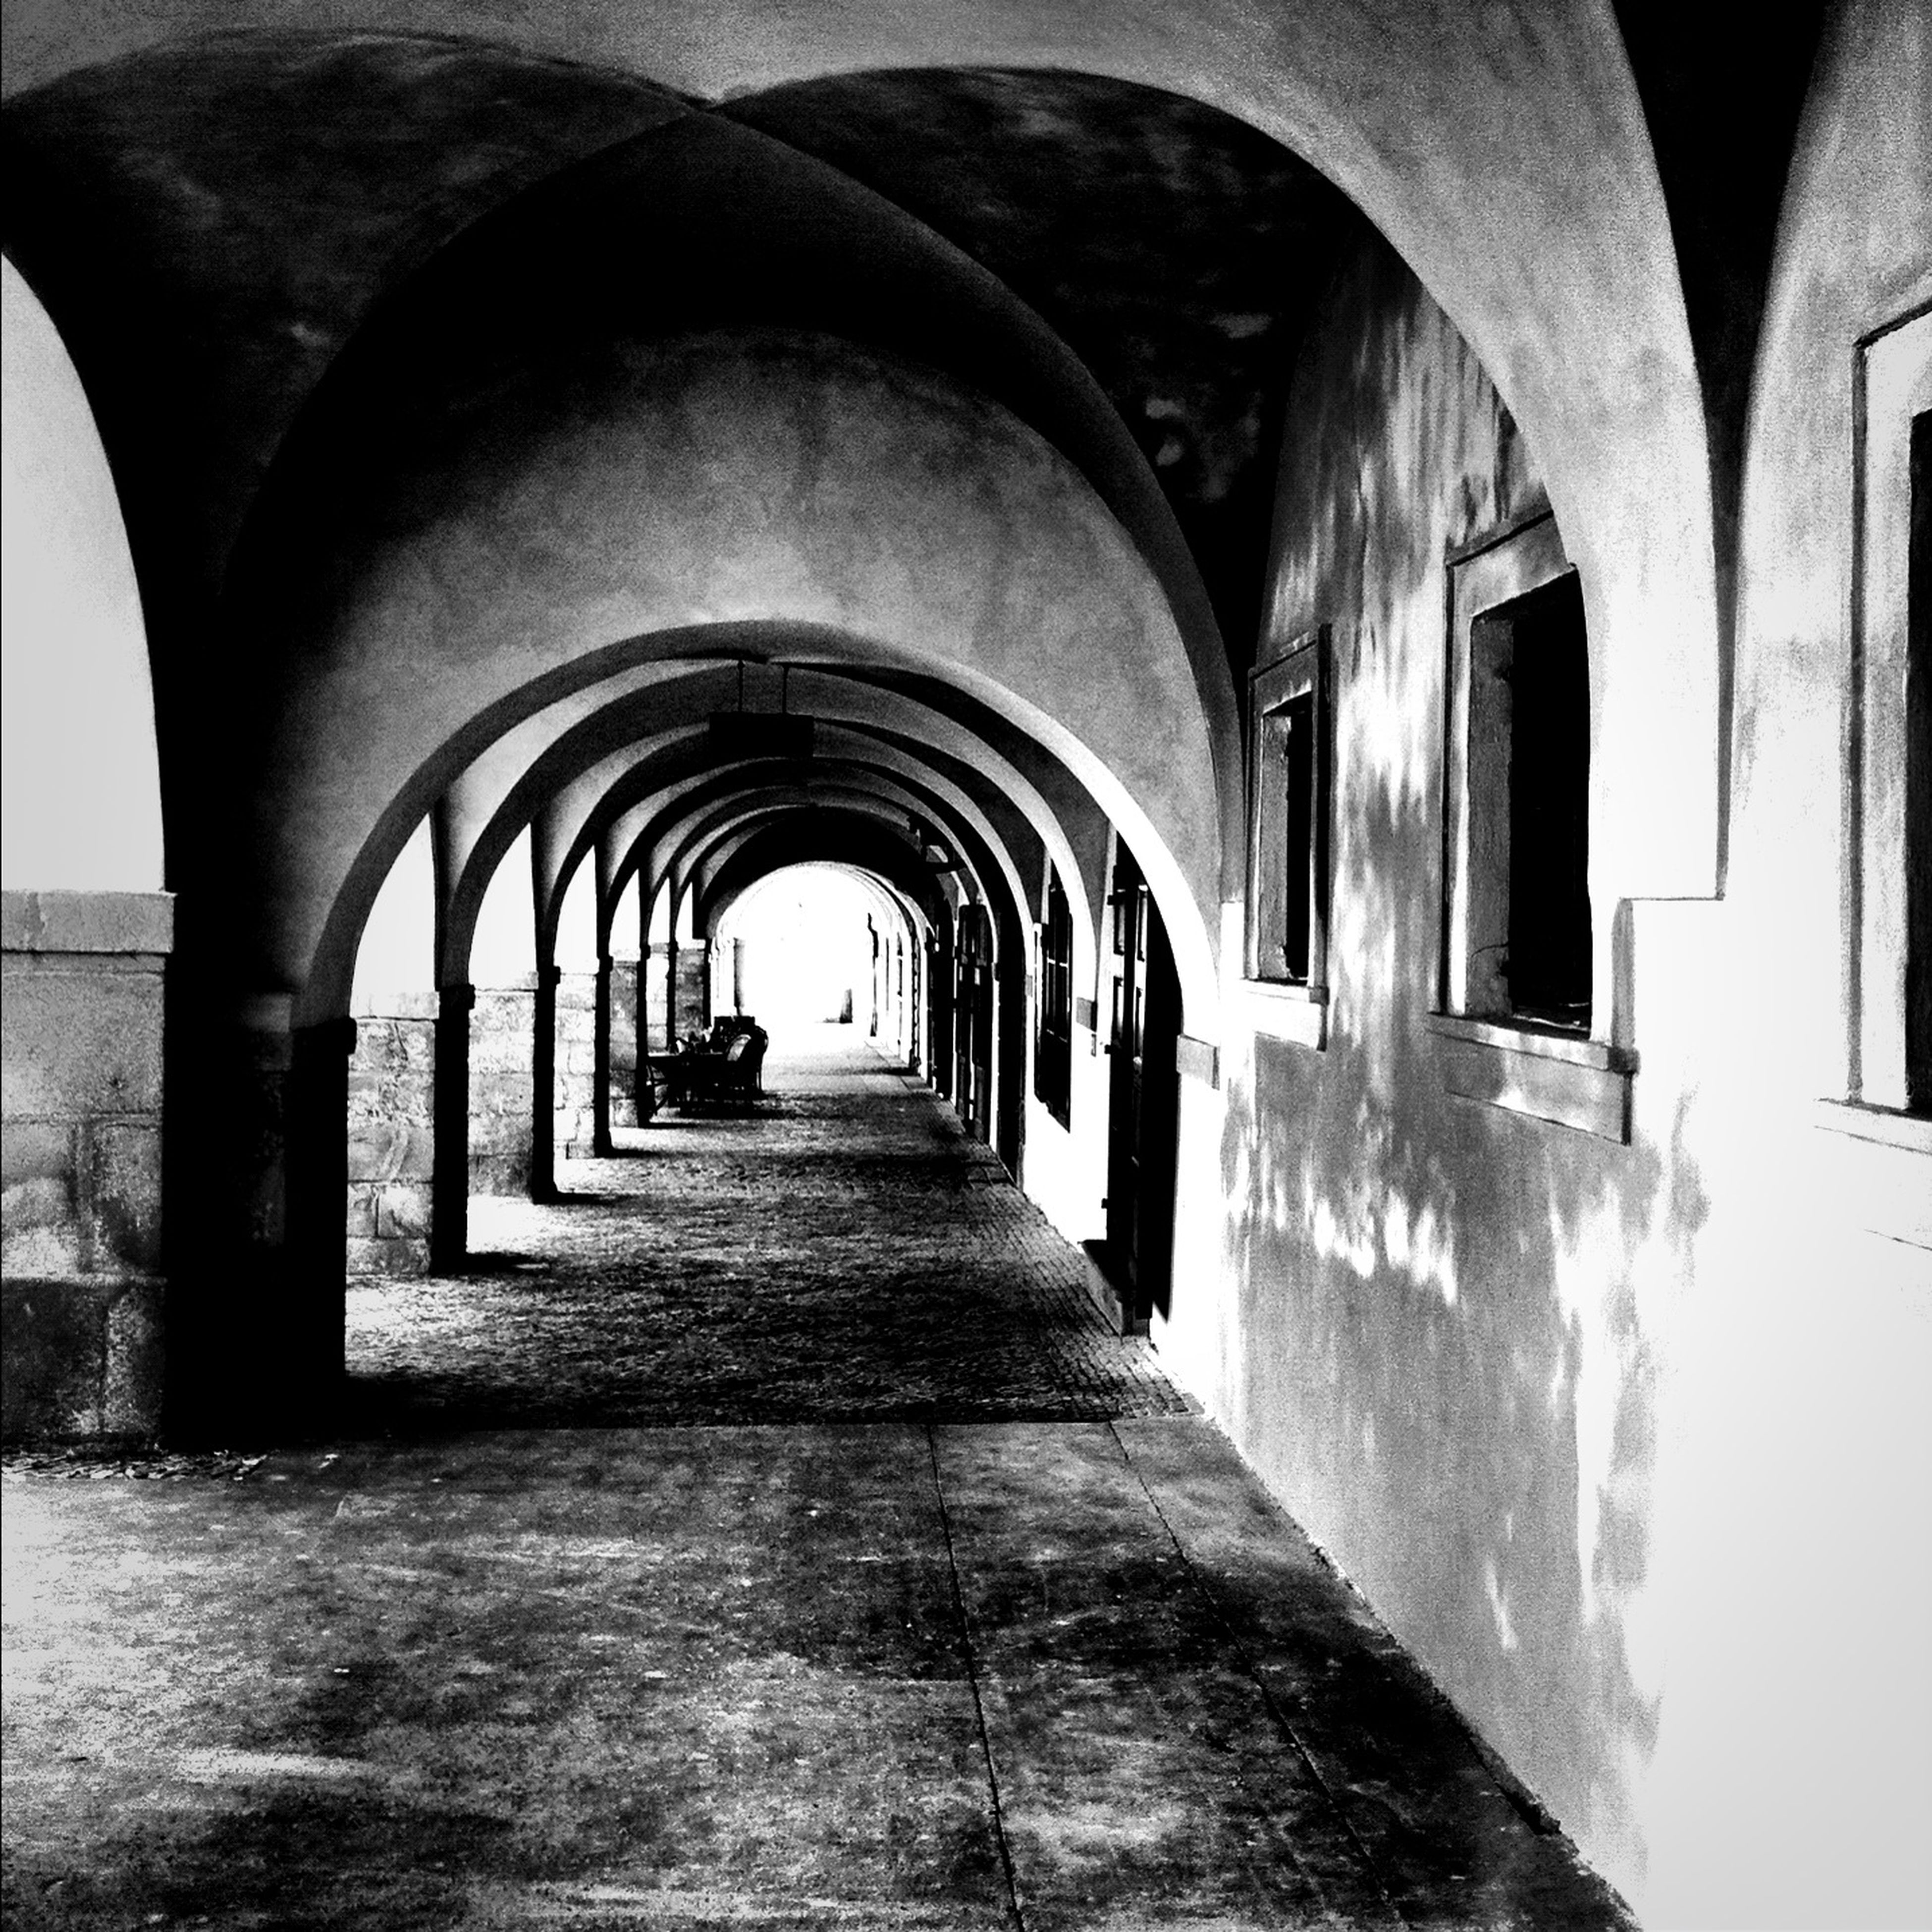 arch, architecture, the way forward, built structure, indoors, archway, diminishing perspective, corridor, vanishing point, tunnel, narrow, walkway, architectural column, arched, empty, day, building exterior, building, in a row, history